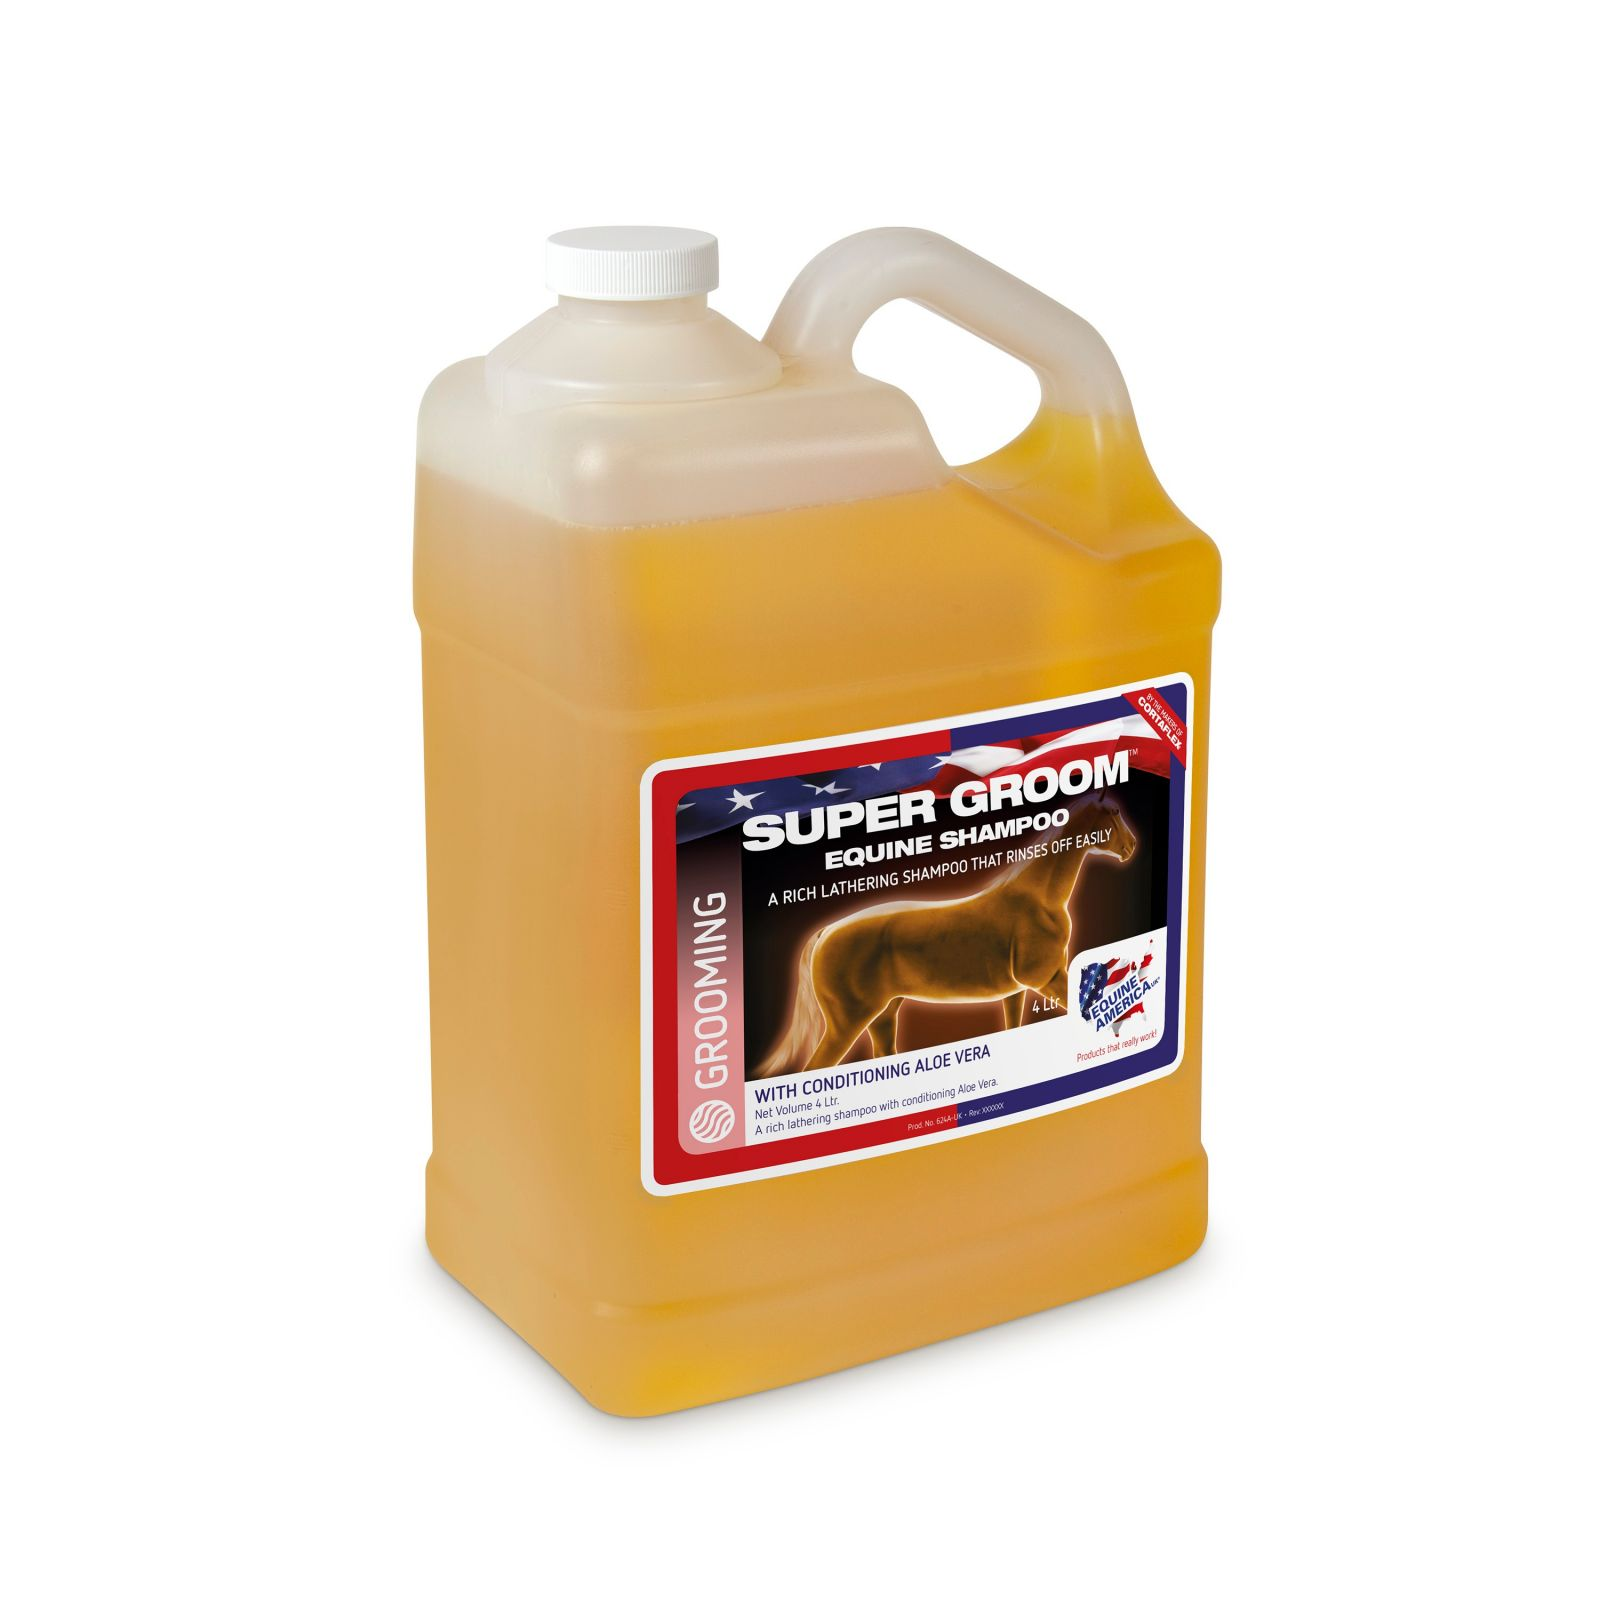 SUPER GROOM EQUINE SHAMPOO